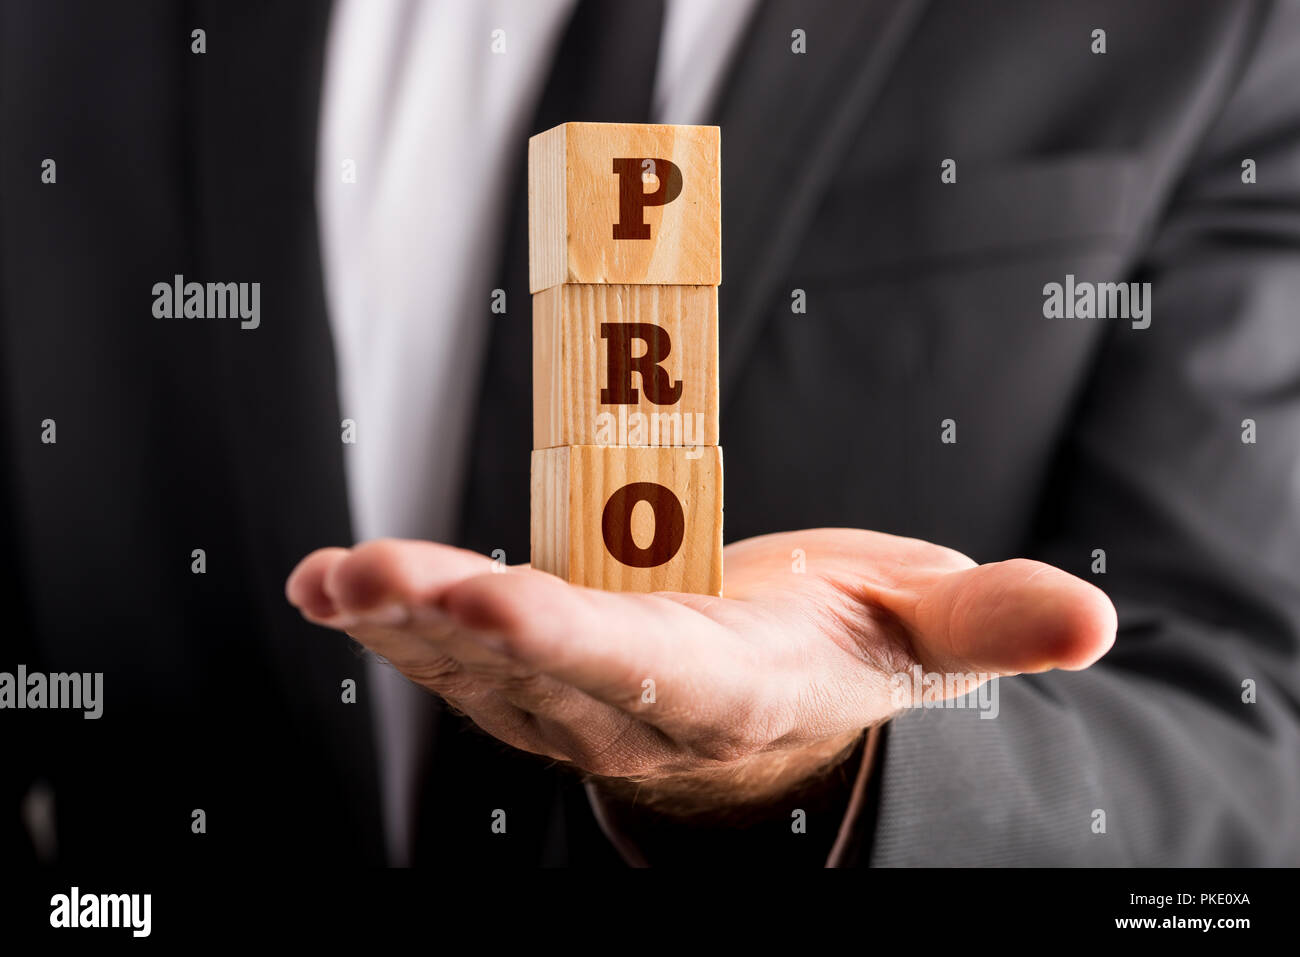 Businessman holding three wooden cubes stacked on the palm of his hand reading a PRO sign. Conceptual of professionalism and success. - Stock Image